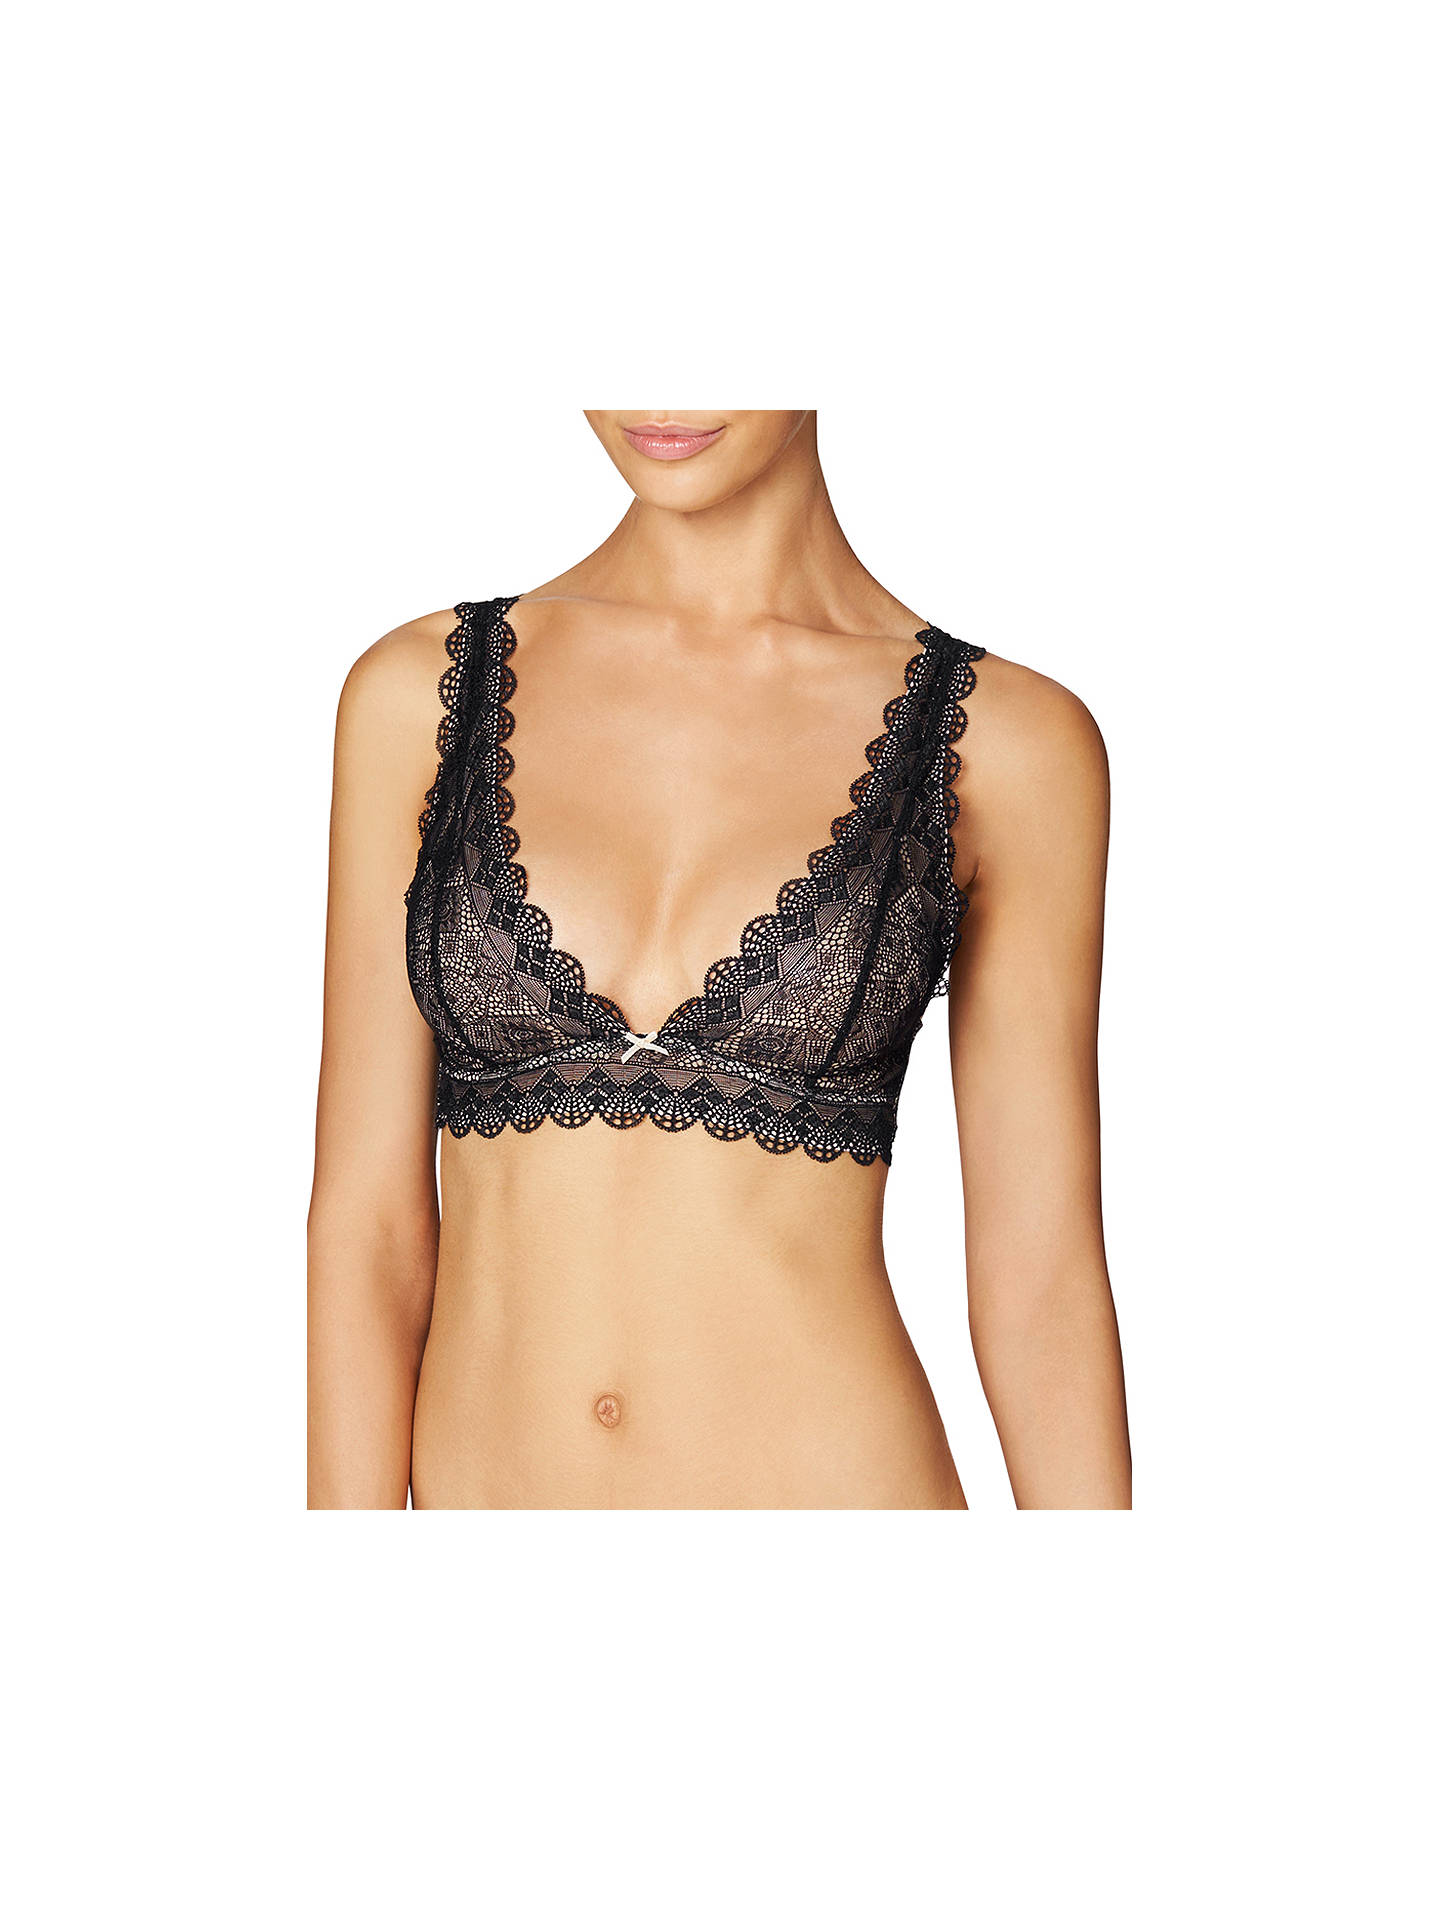 eff31b380d04 Buy Heidi Klum Intimates Geometric Lace Soft Cup Bra, Black/Almond, S  Online ...